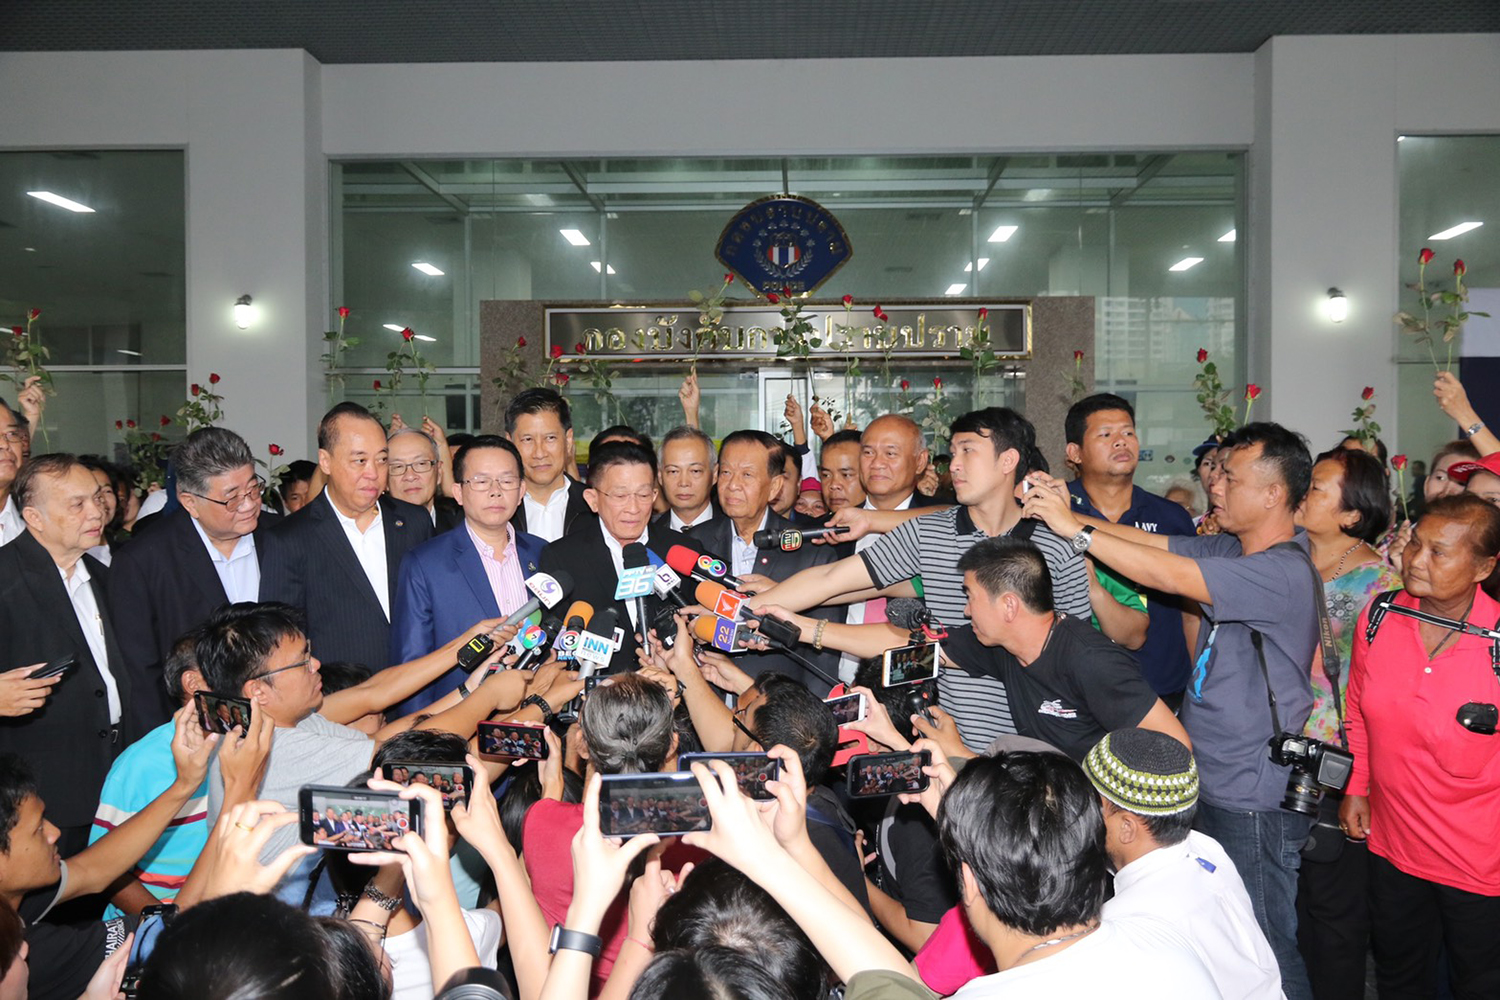 Opposition core members, led by Pheu Thai Party leader Sompong Amornwiwat (centre), talk to the media before registering a complaint against the Internal Security Operations Command at the Crime Suppression Division on Sunday. (Photo by Wassayos Ngamkham)